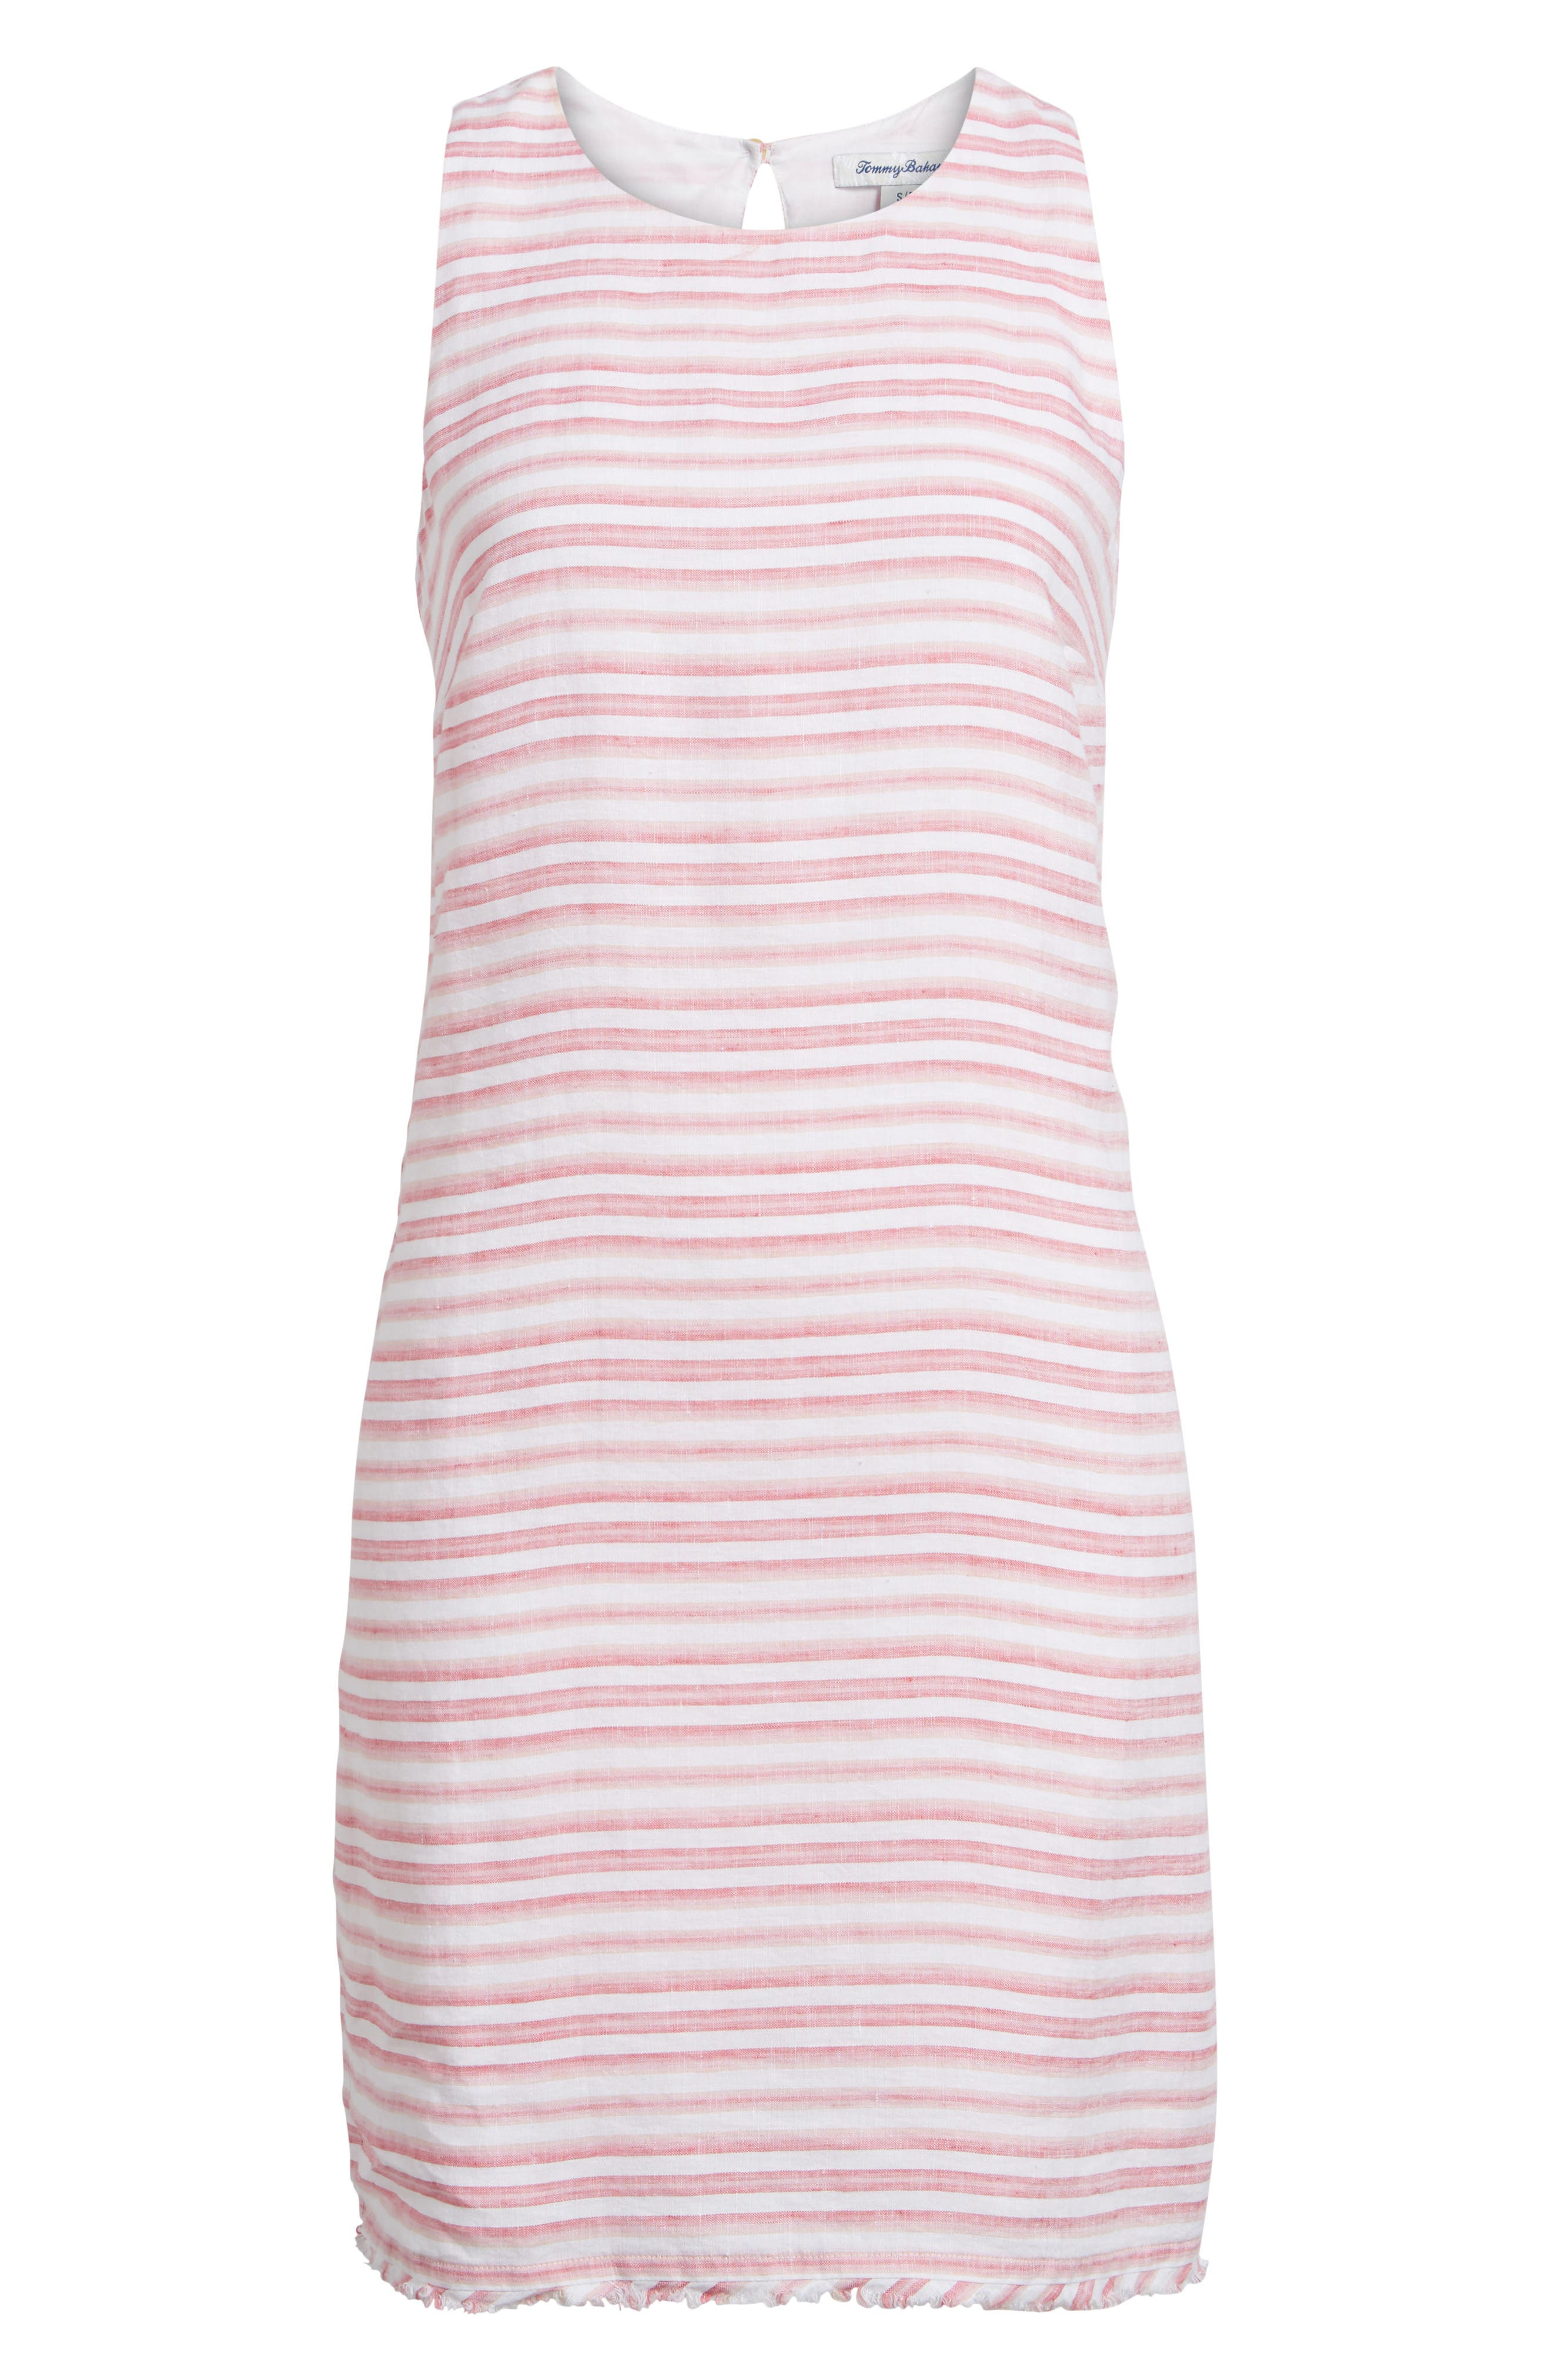 Bella Hermosa Linen Shift Dress,                             Alternate thumbnail 6, color,                             French Rose